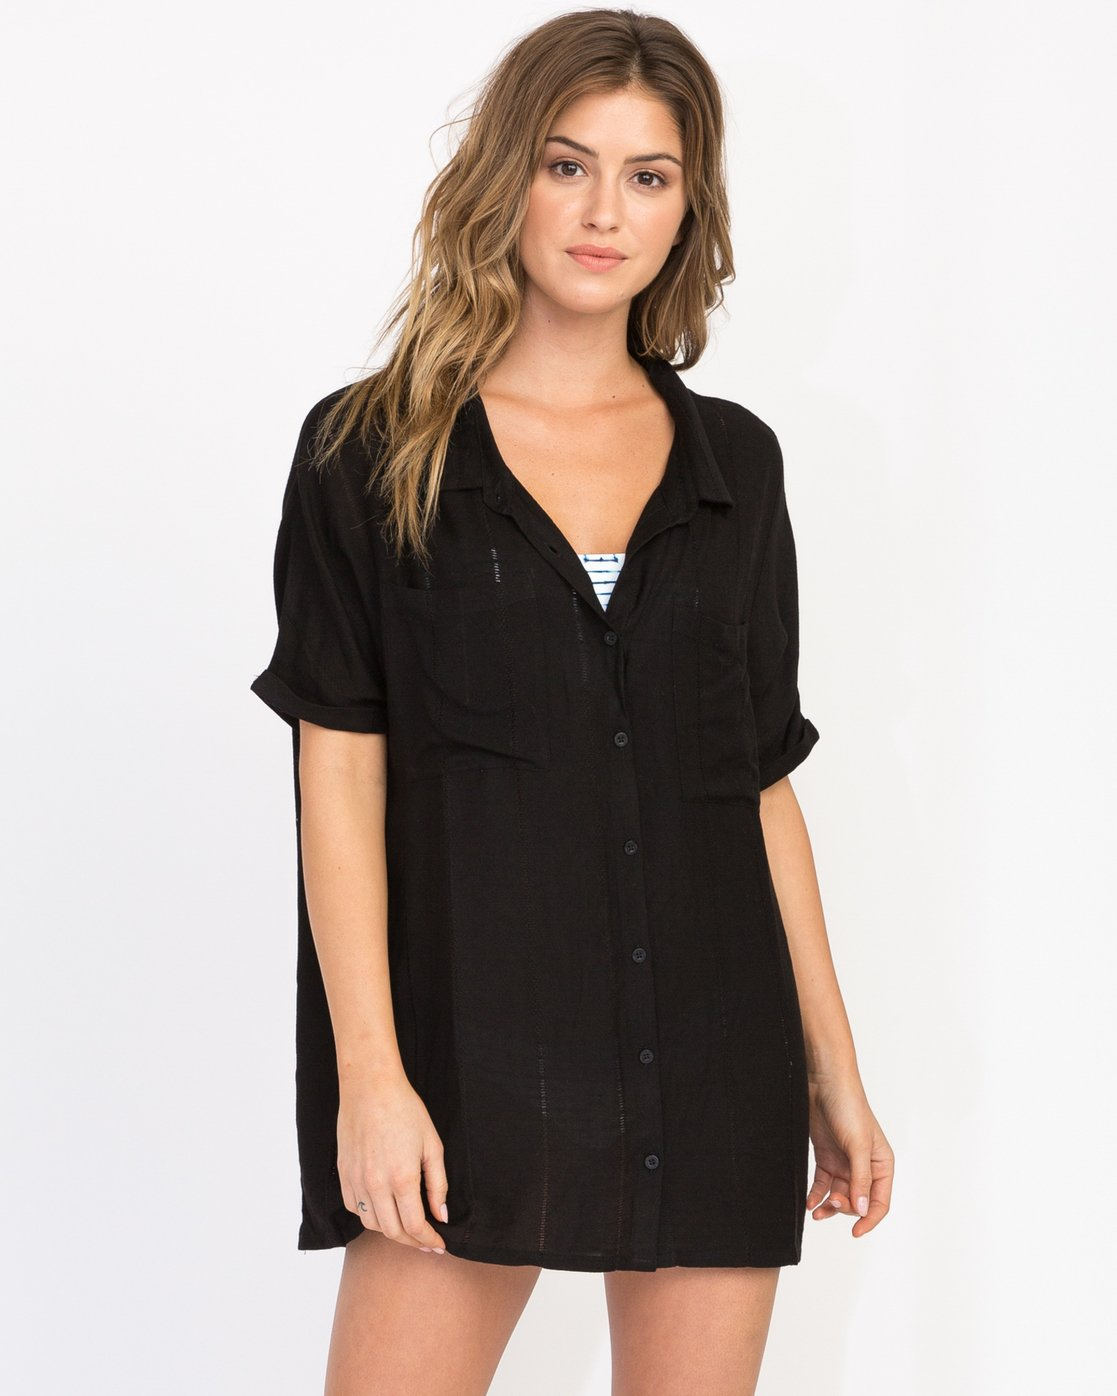 0 And Then Tunic Shirt Dress Black XC05PRAN RVCA